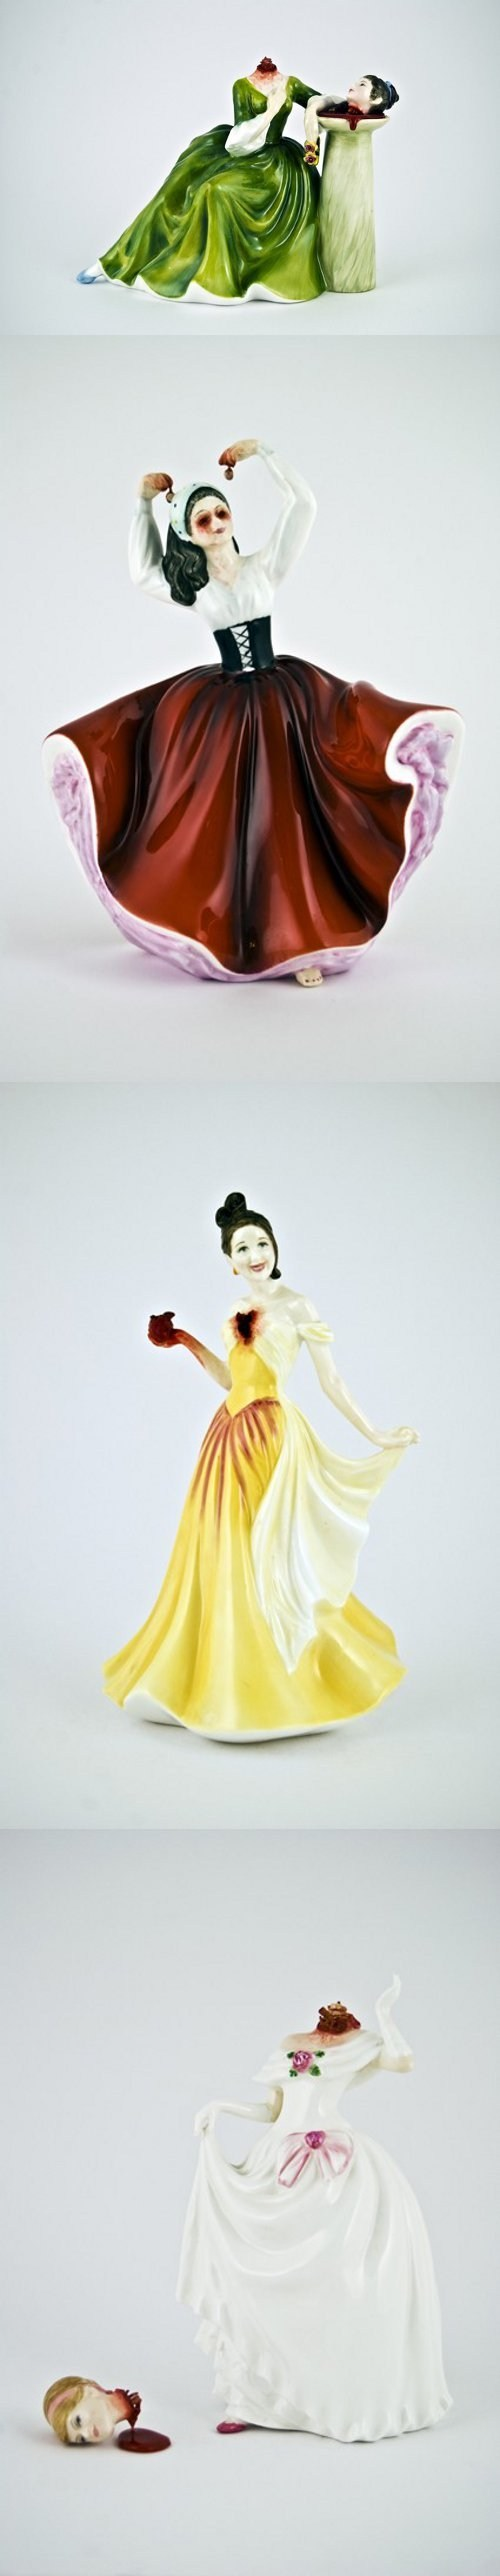 These Aren't Your Grandmother's Porcelain Figurines